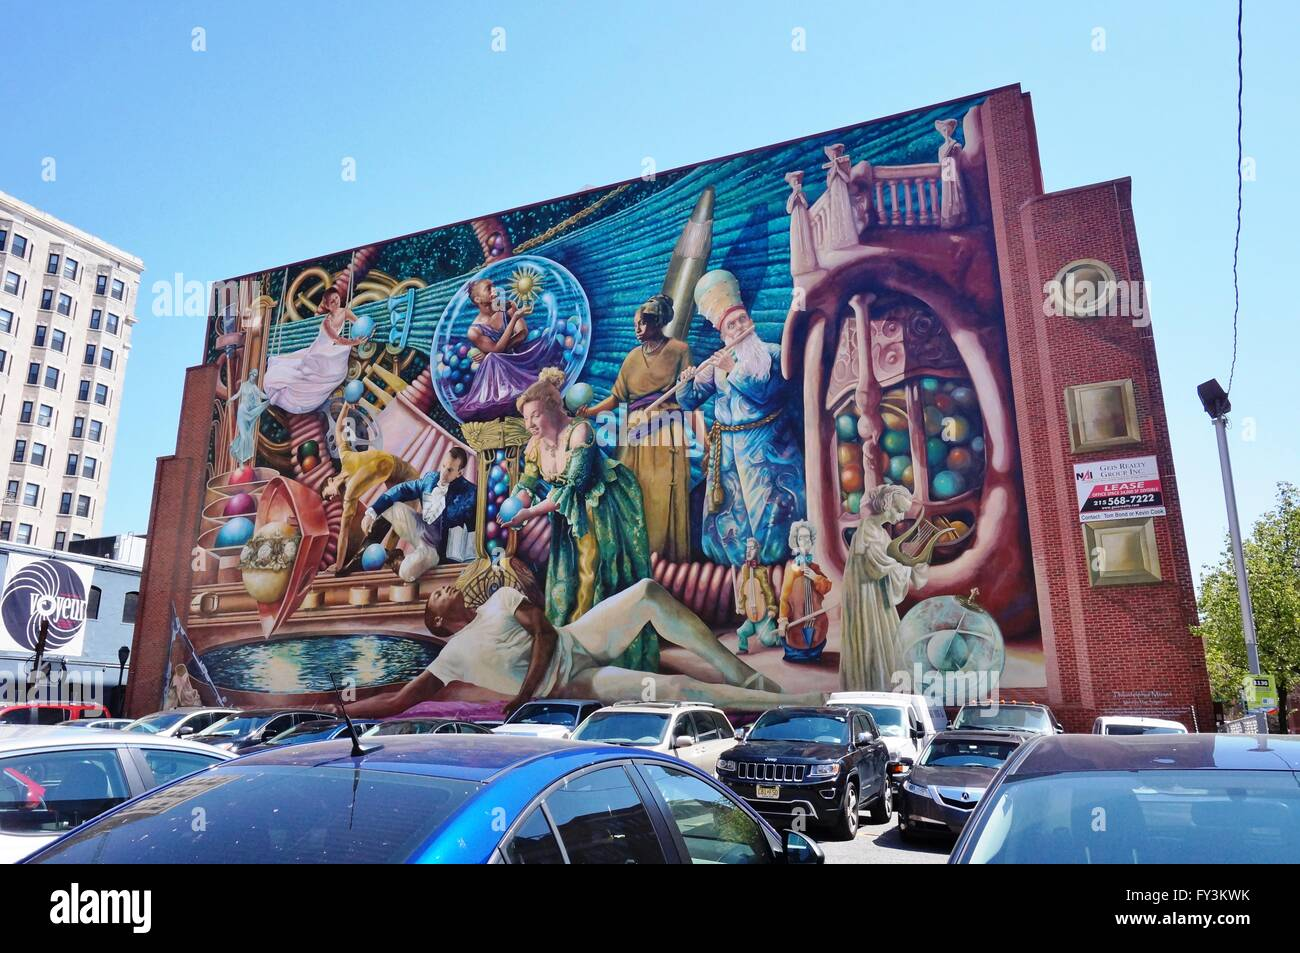 philadelphia pa 15 april 2016 more than 3 000 painted murals philadelphia pa 15 april 2016 more than 3 000 painted murals adorn street walls in philadelphia thanks to the mural arts prog